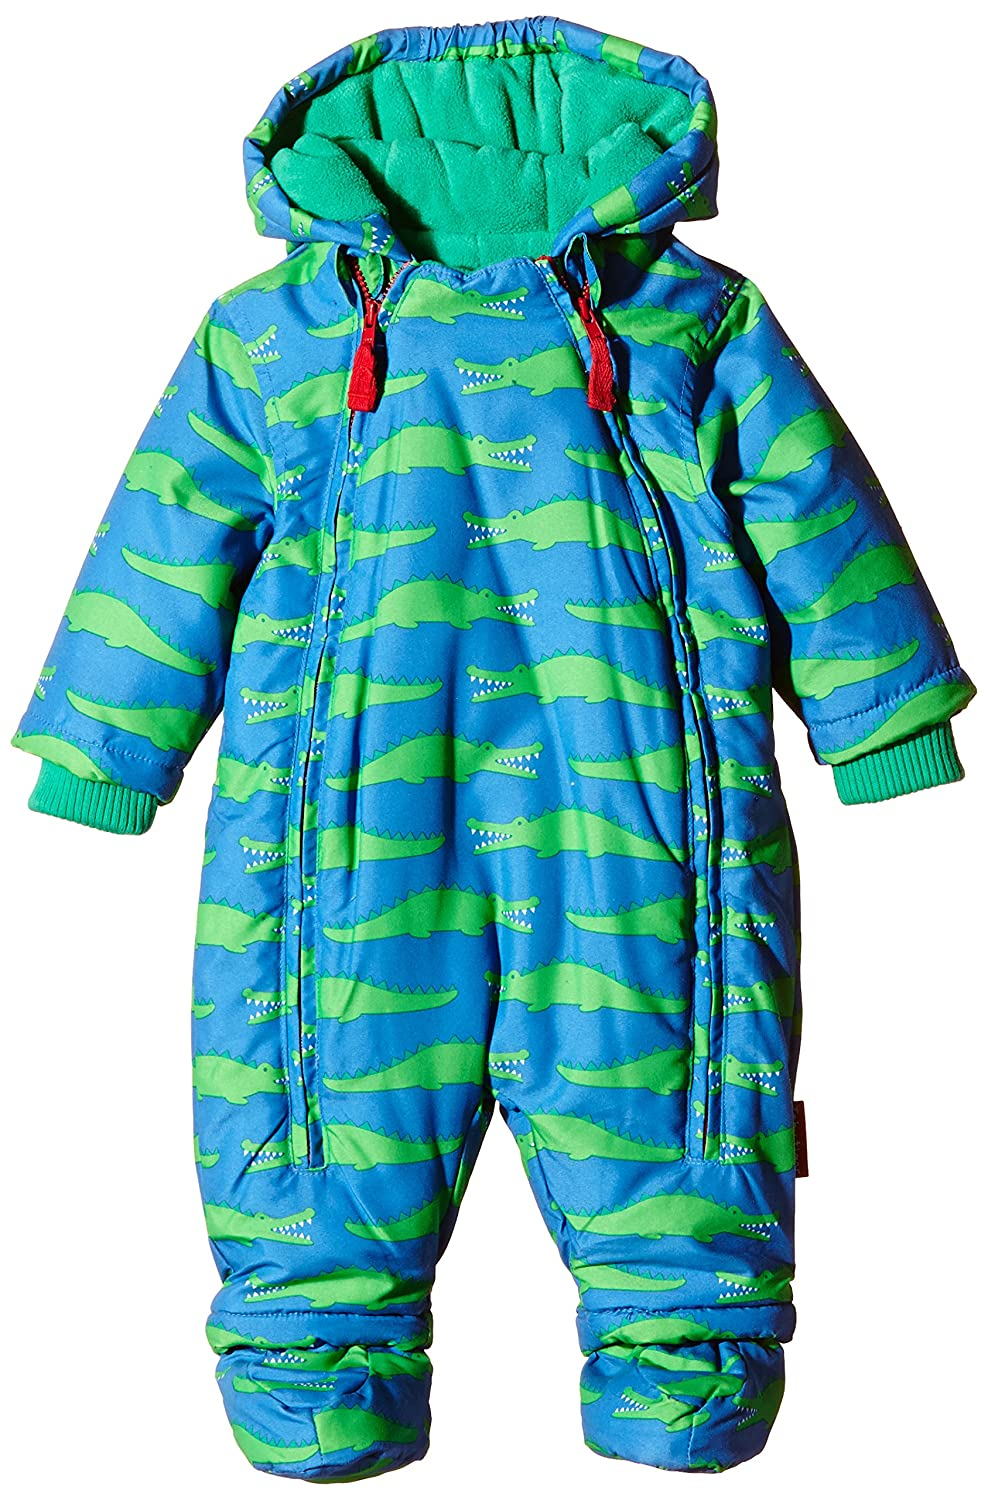 Toby Tiger - Fleece Lined with Waterproff Outer Croc Snowsuit with Detachable Feet, Tuta da Neve Bambino SNOWCROC